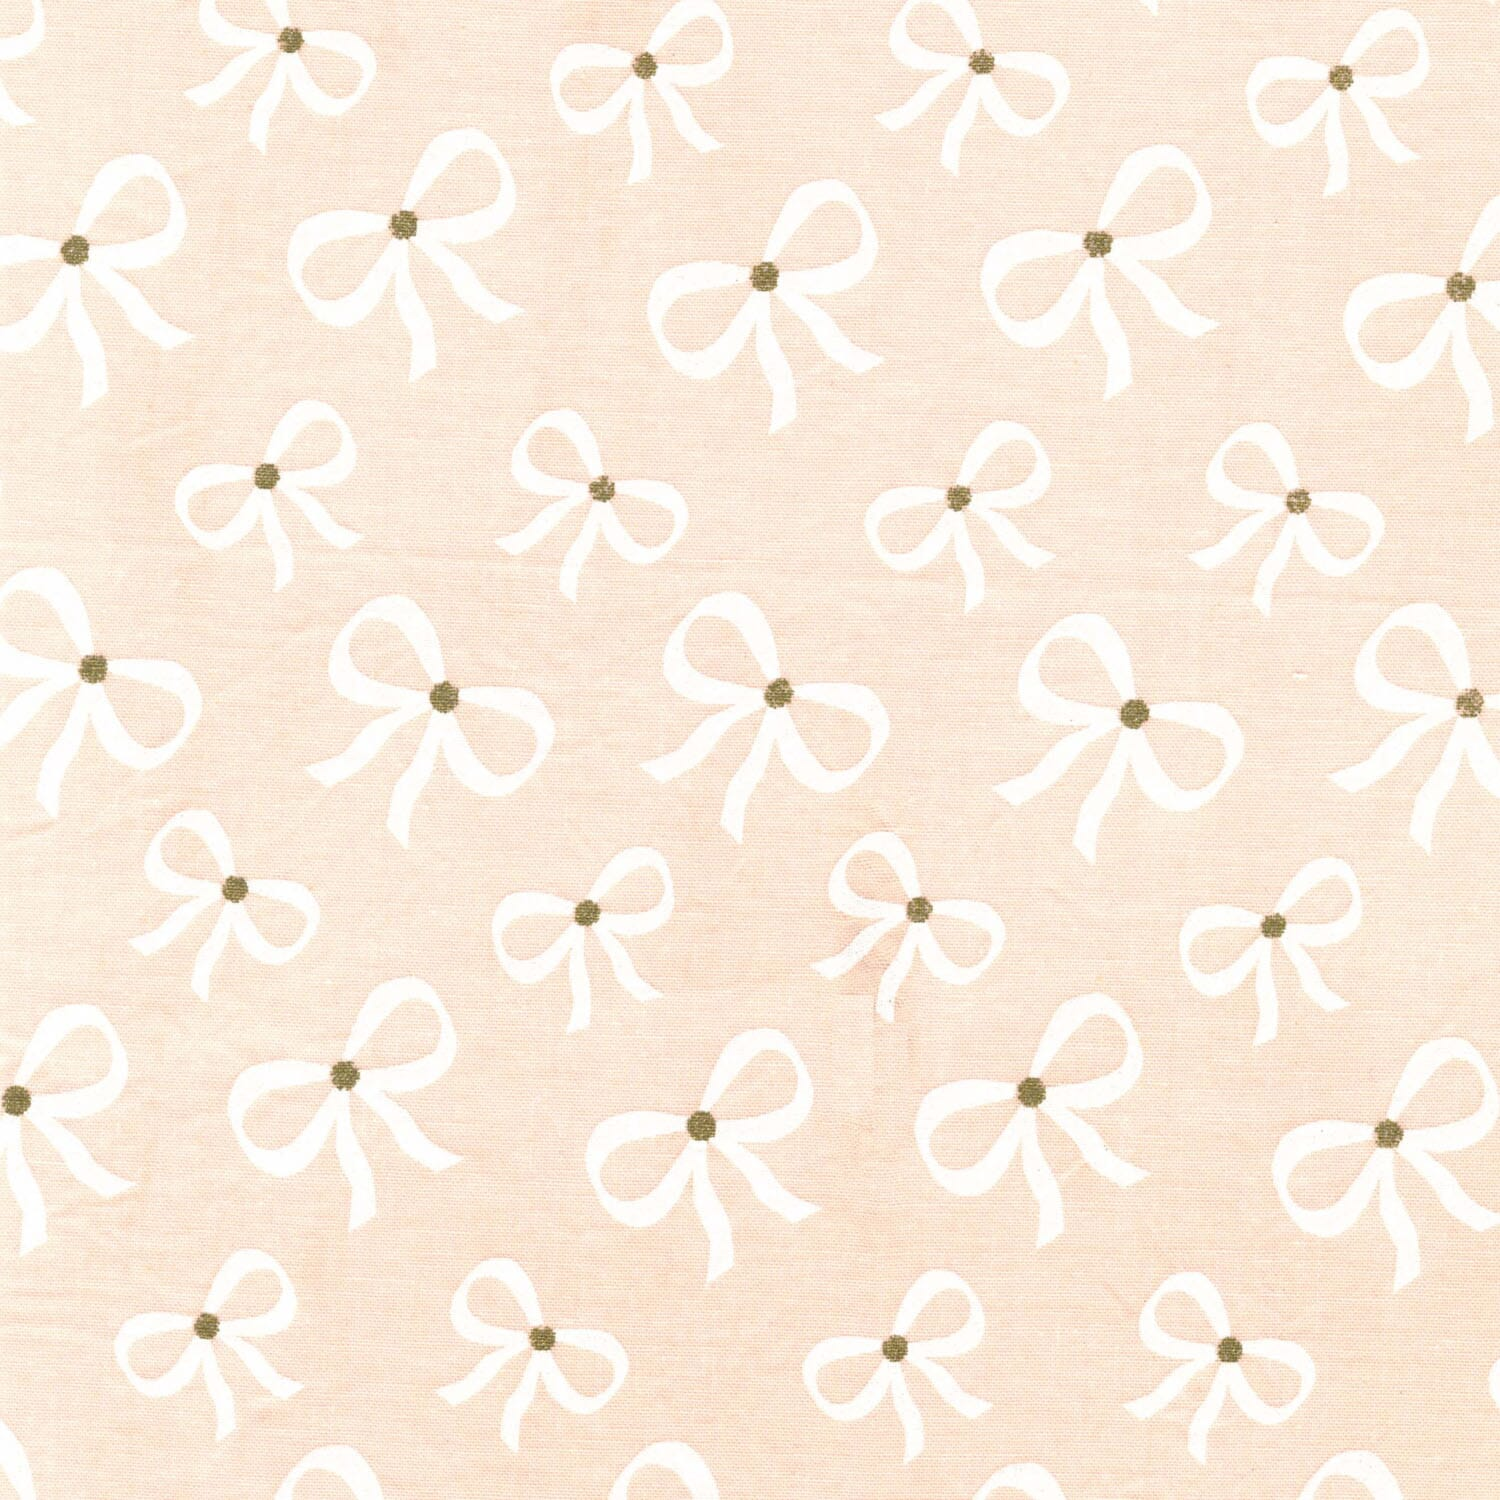 Michael Miller Wee Sparkle Lace Up Confection With Metallic Cotton Fabric